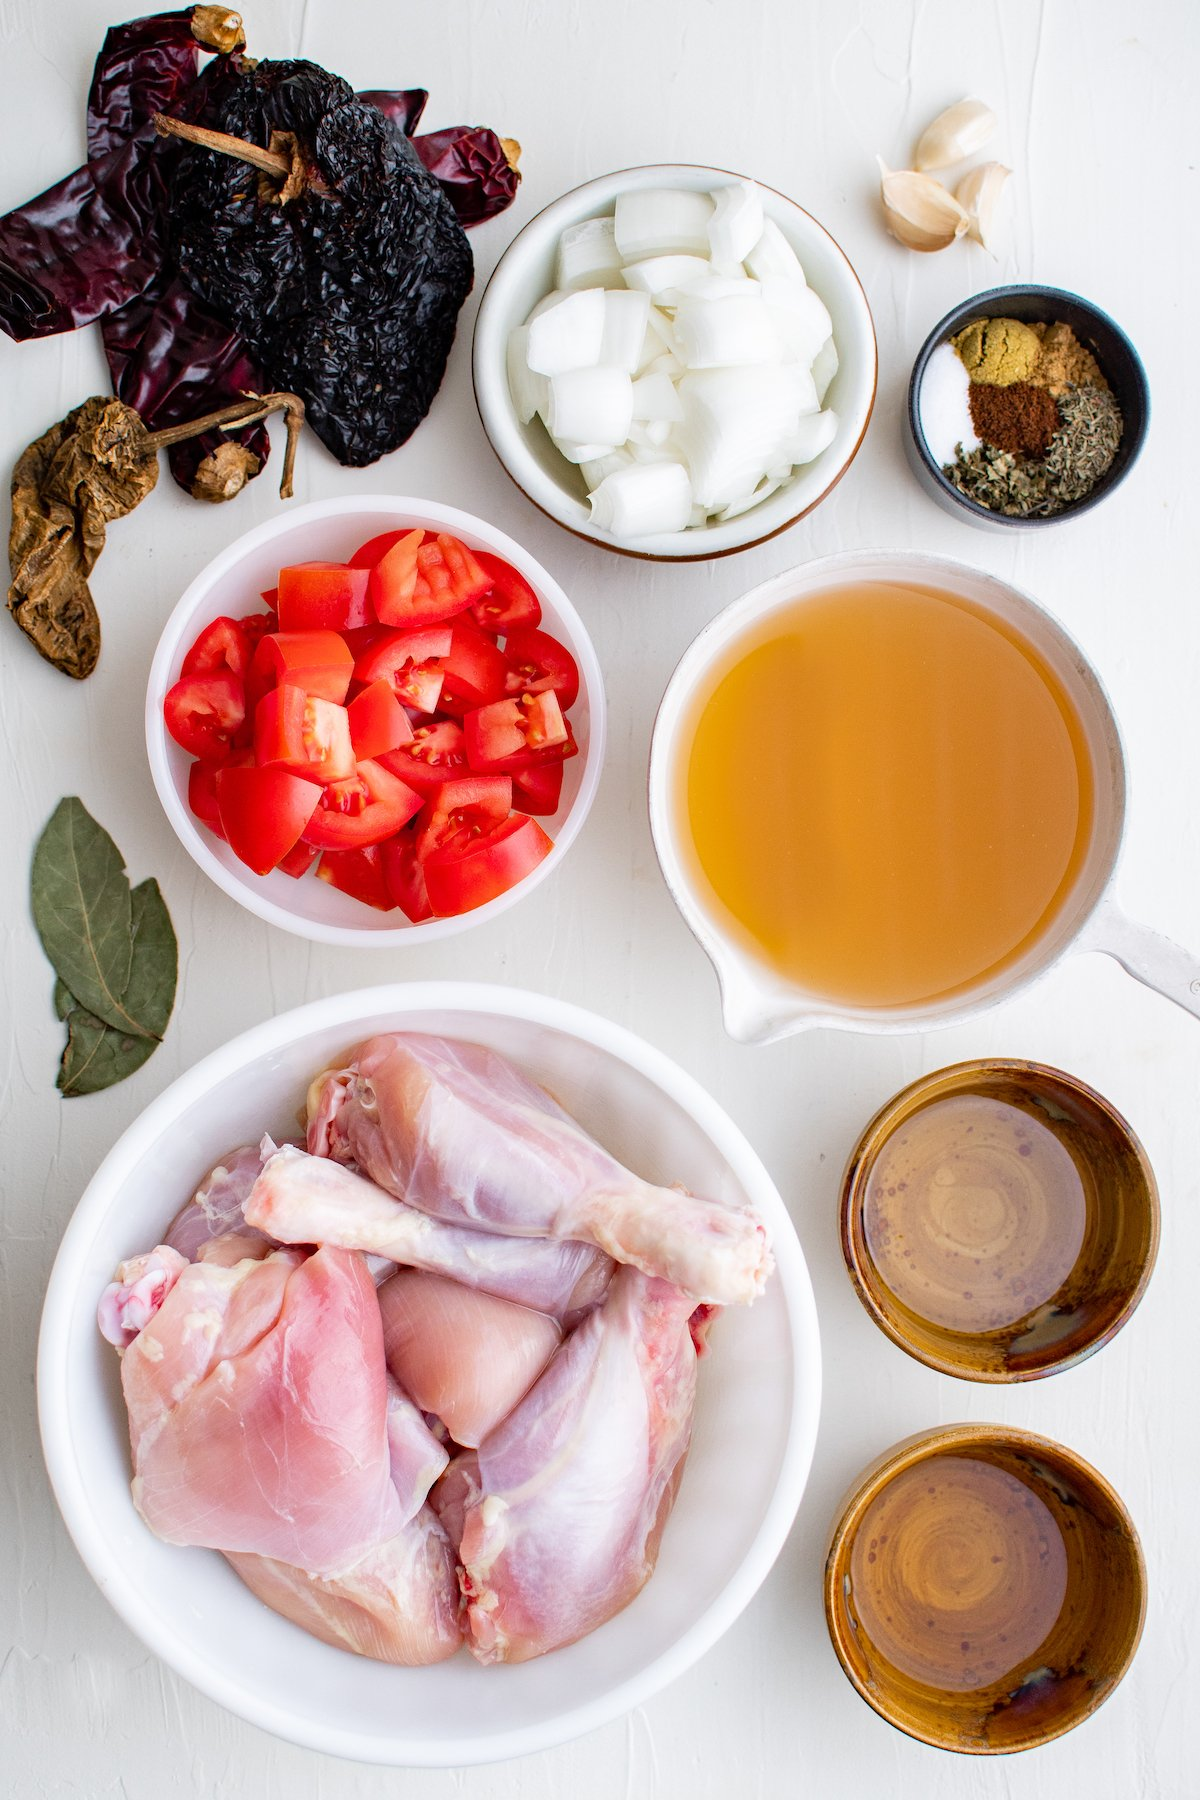 Ingredients for chicken adobo.